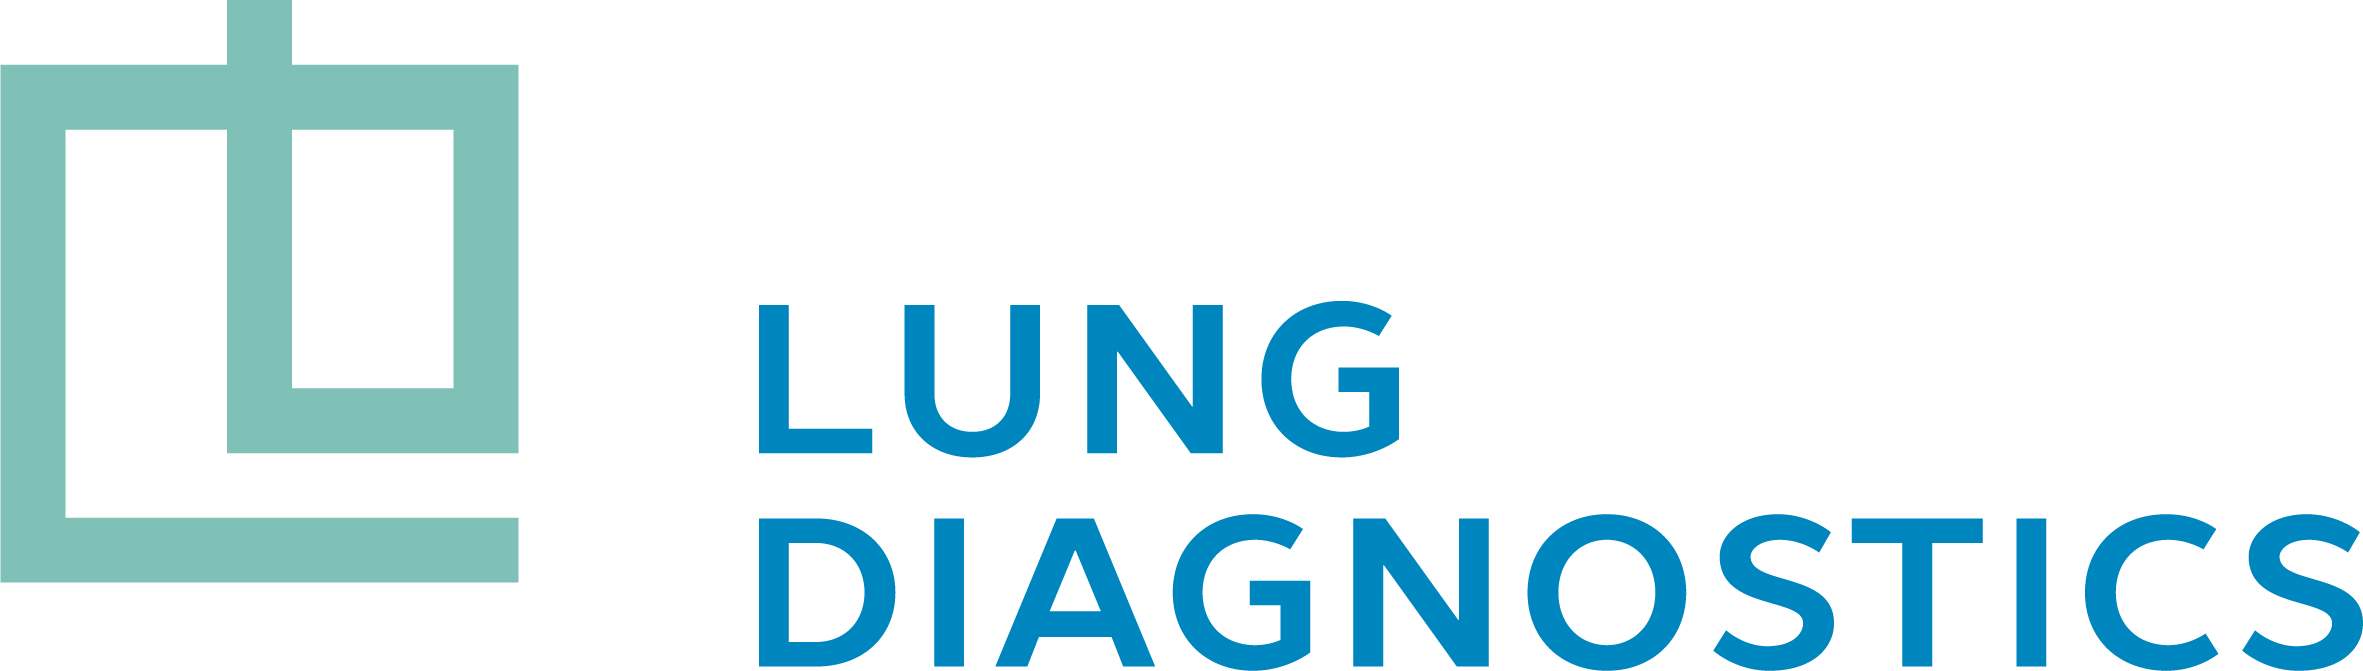 Lung Diagnostics